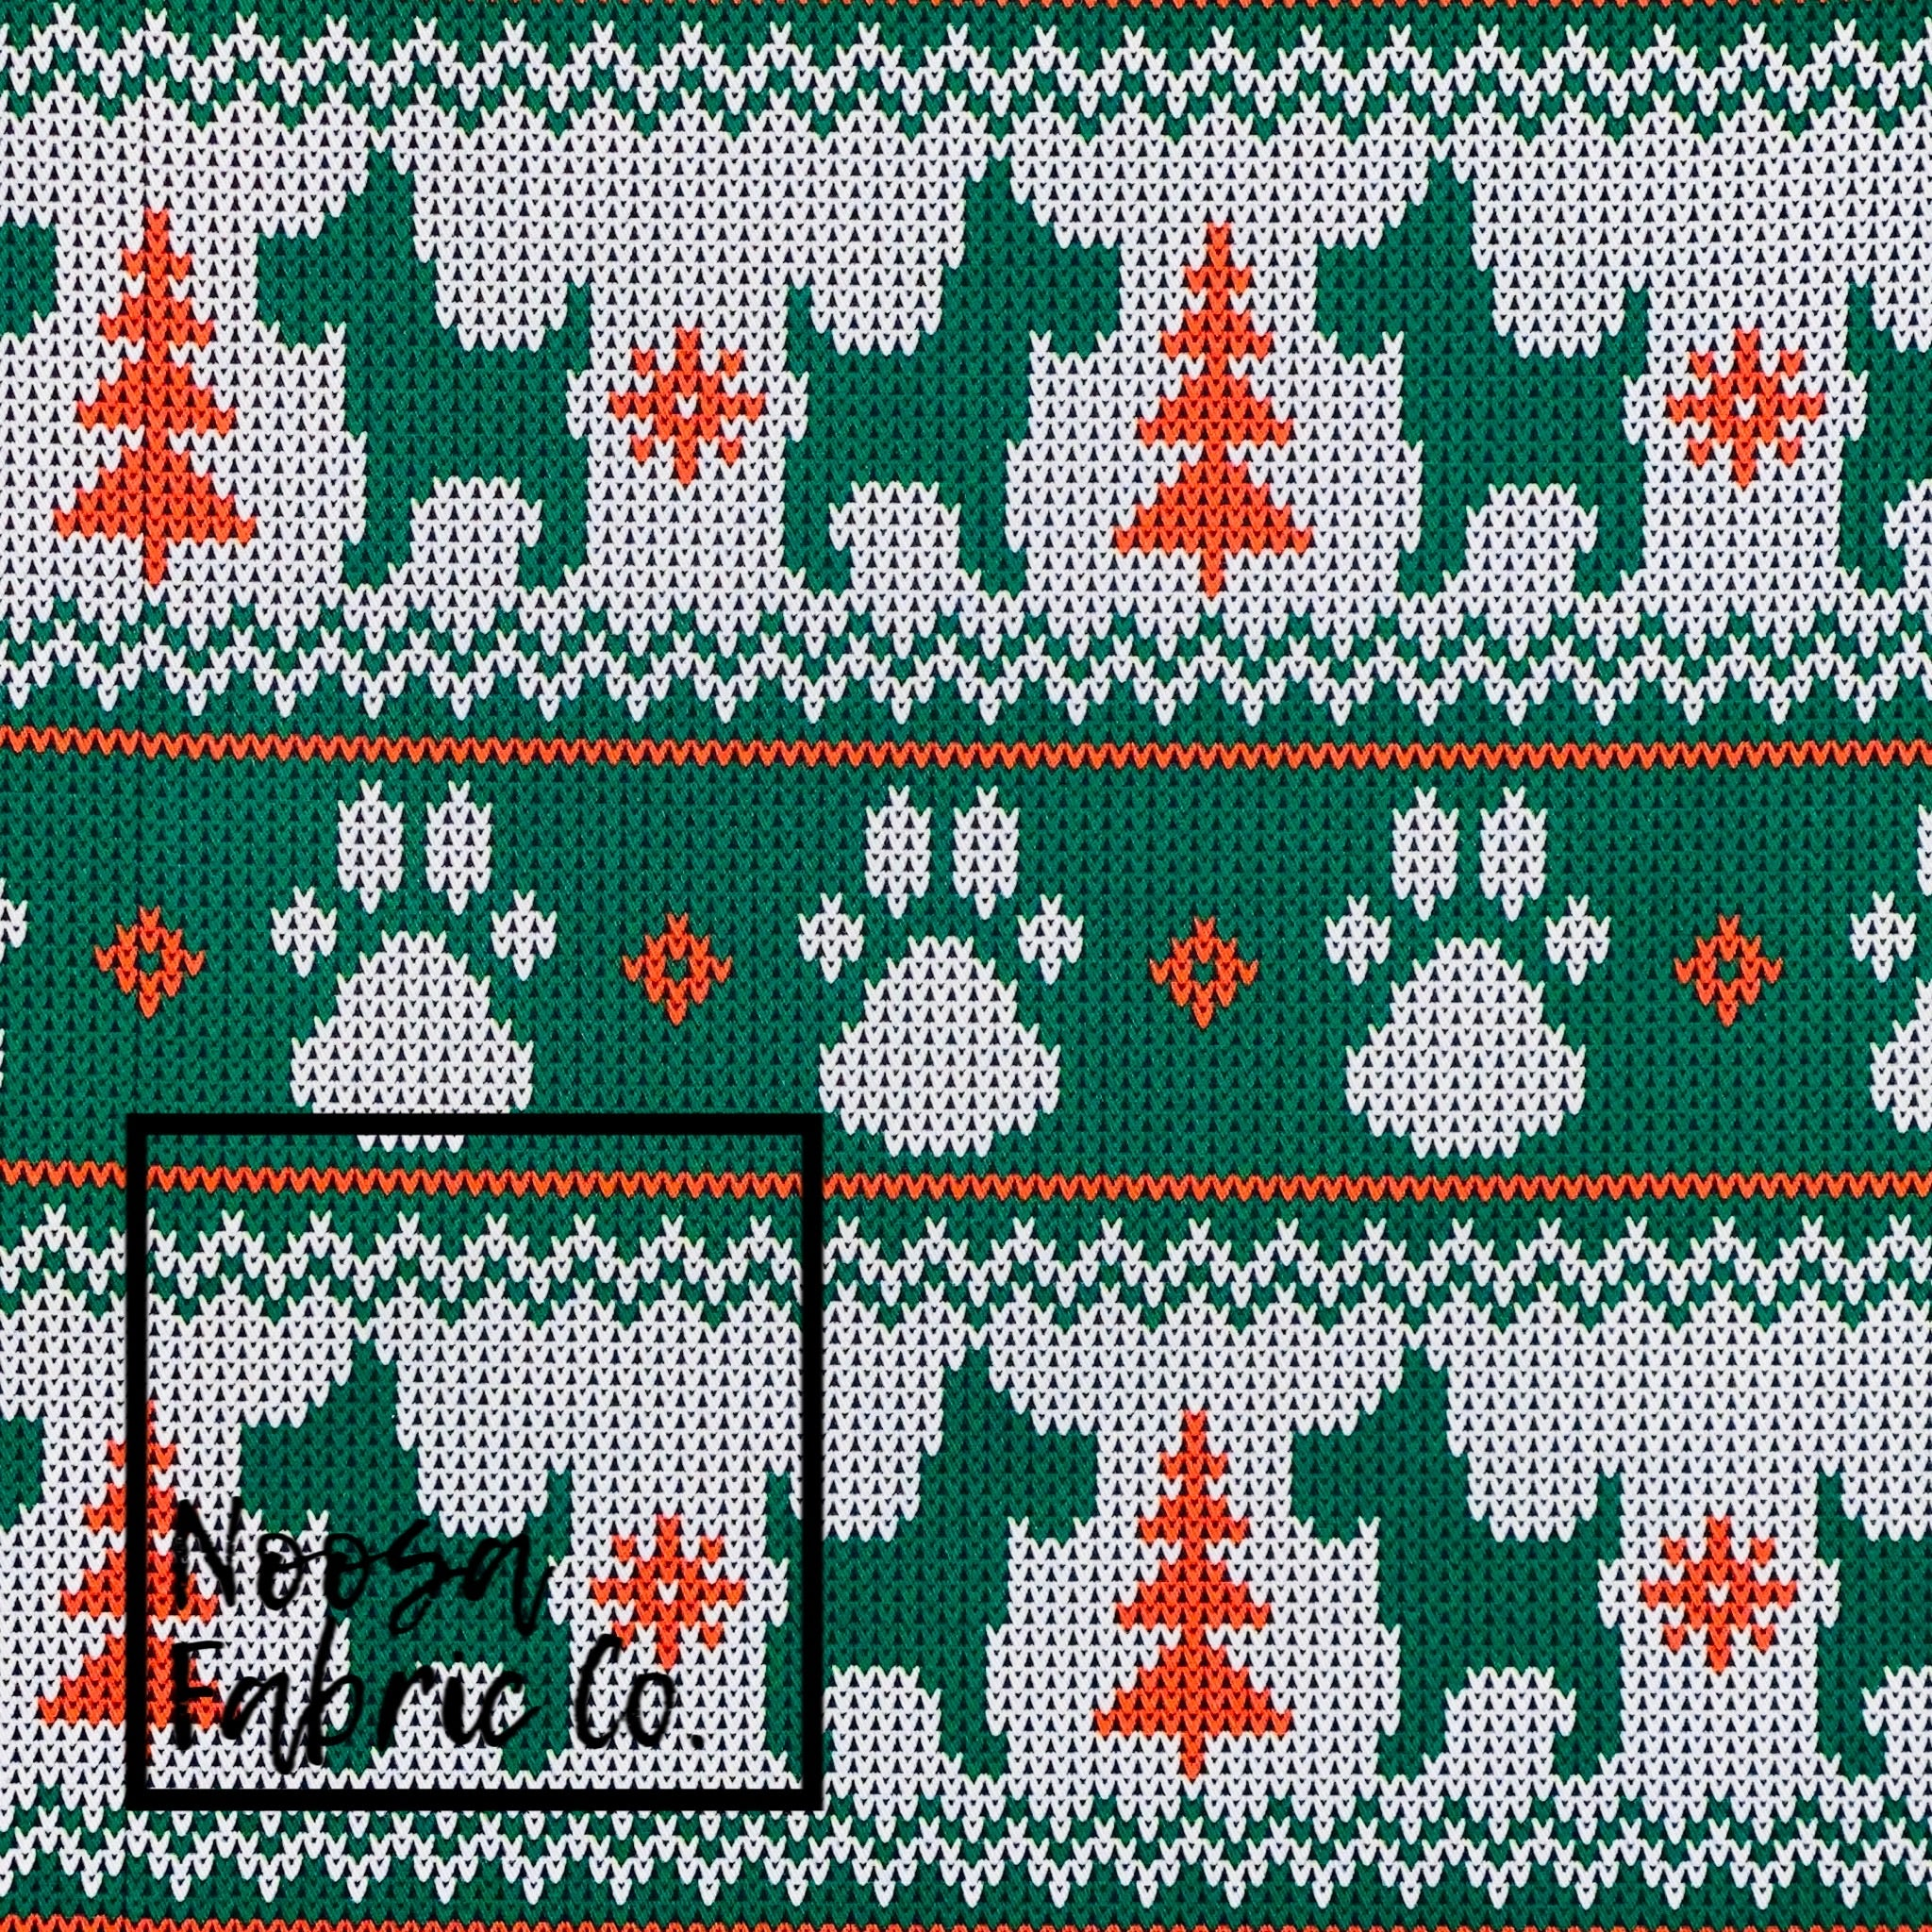 Vixen Christmas Woven Digital Print Fabric